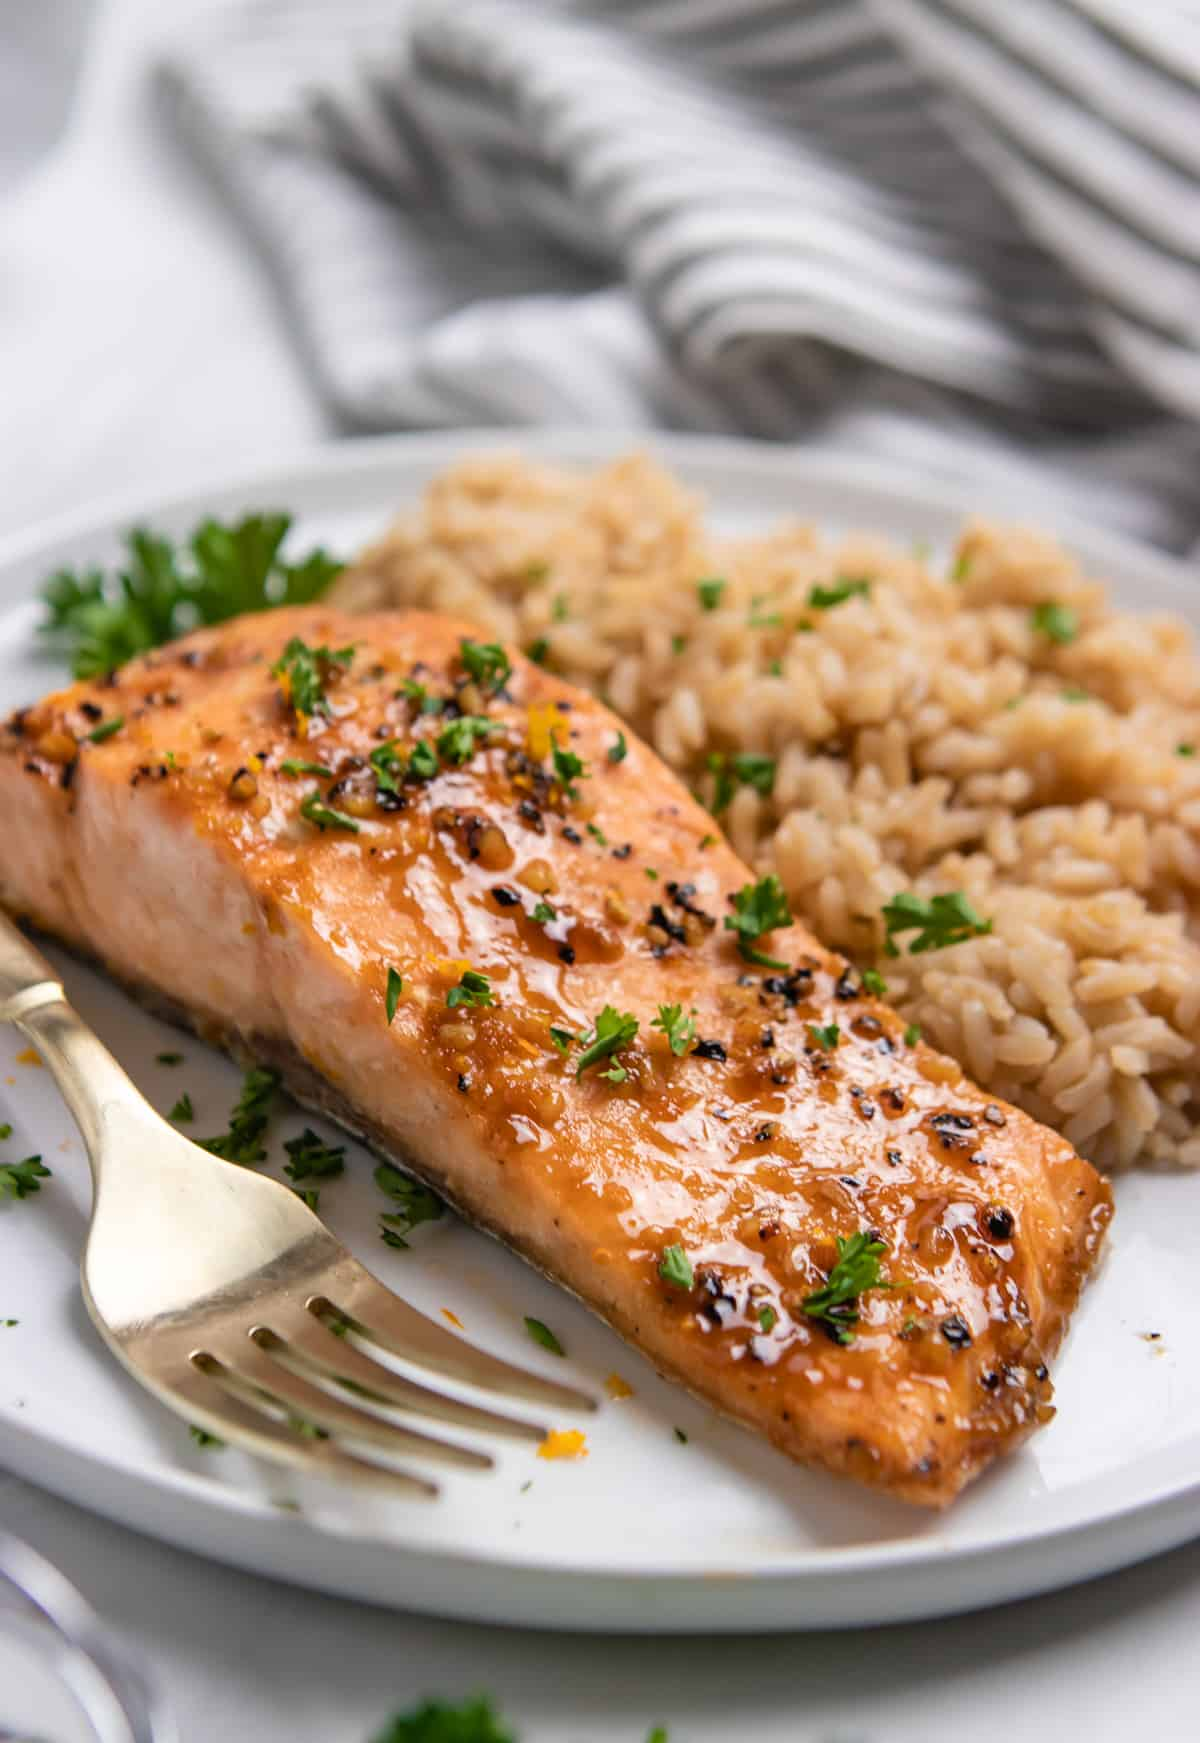 Orange maple glazed salmon on plate with brown rice and fresh parsley on top.